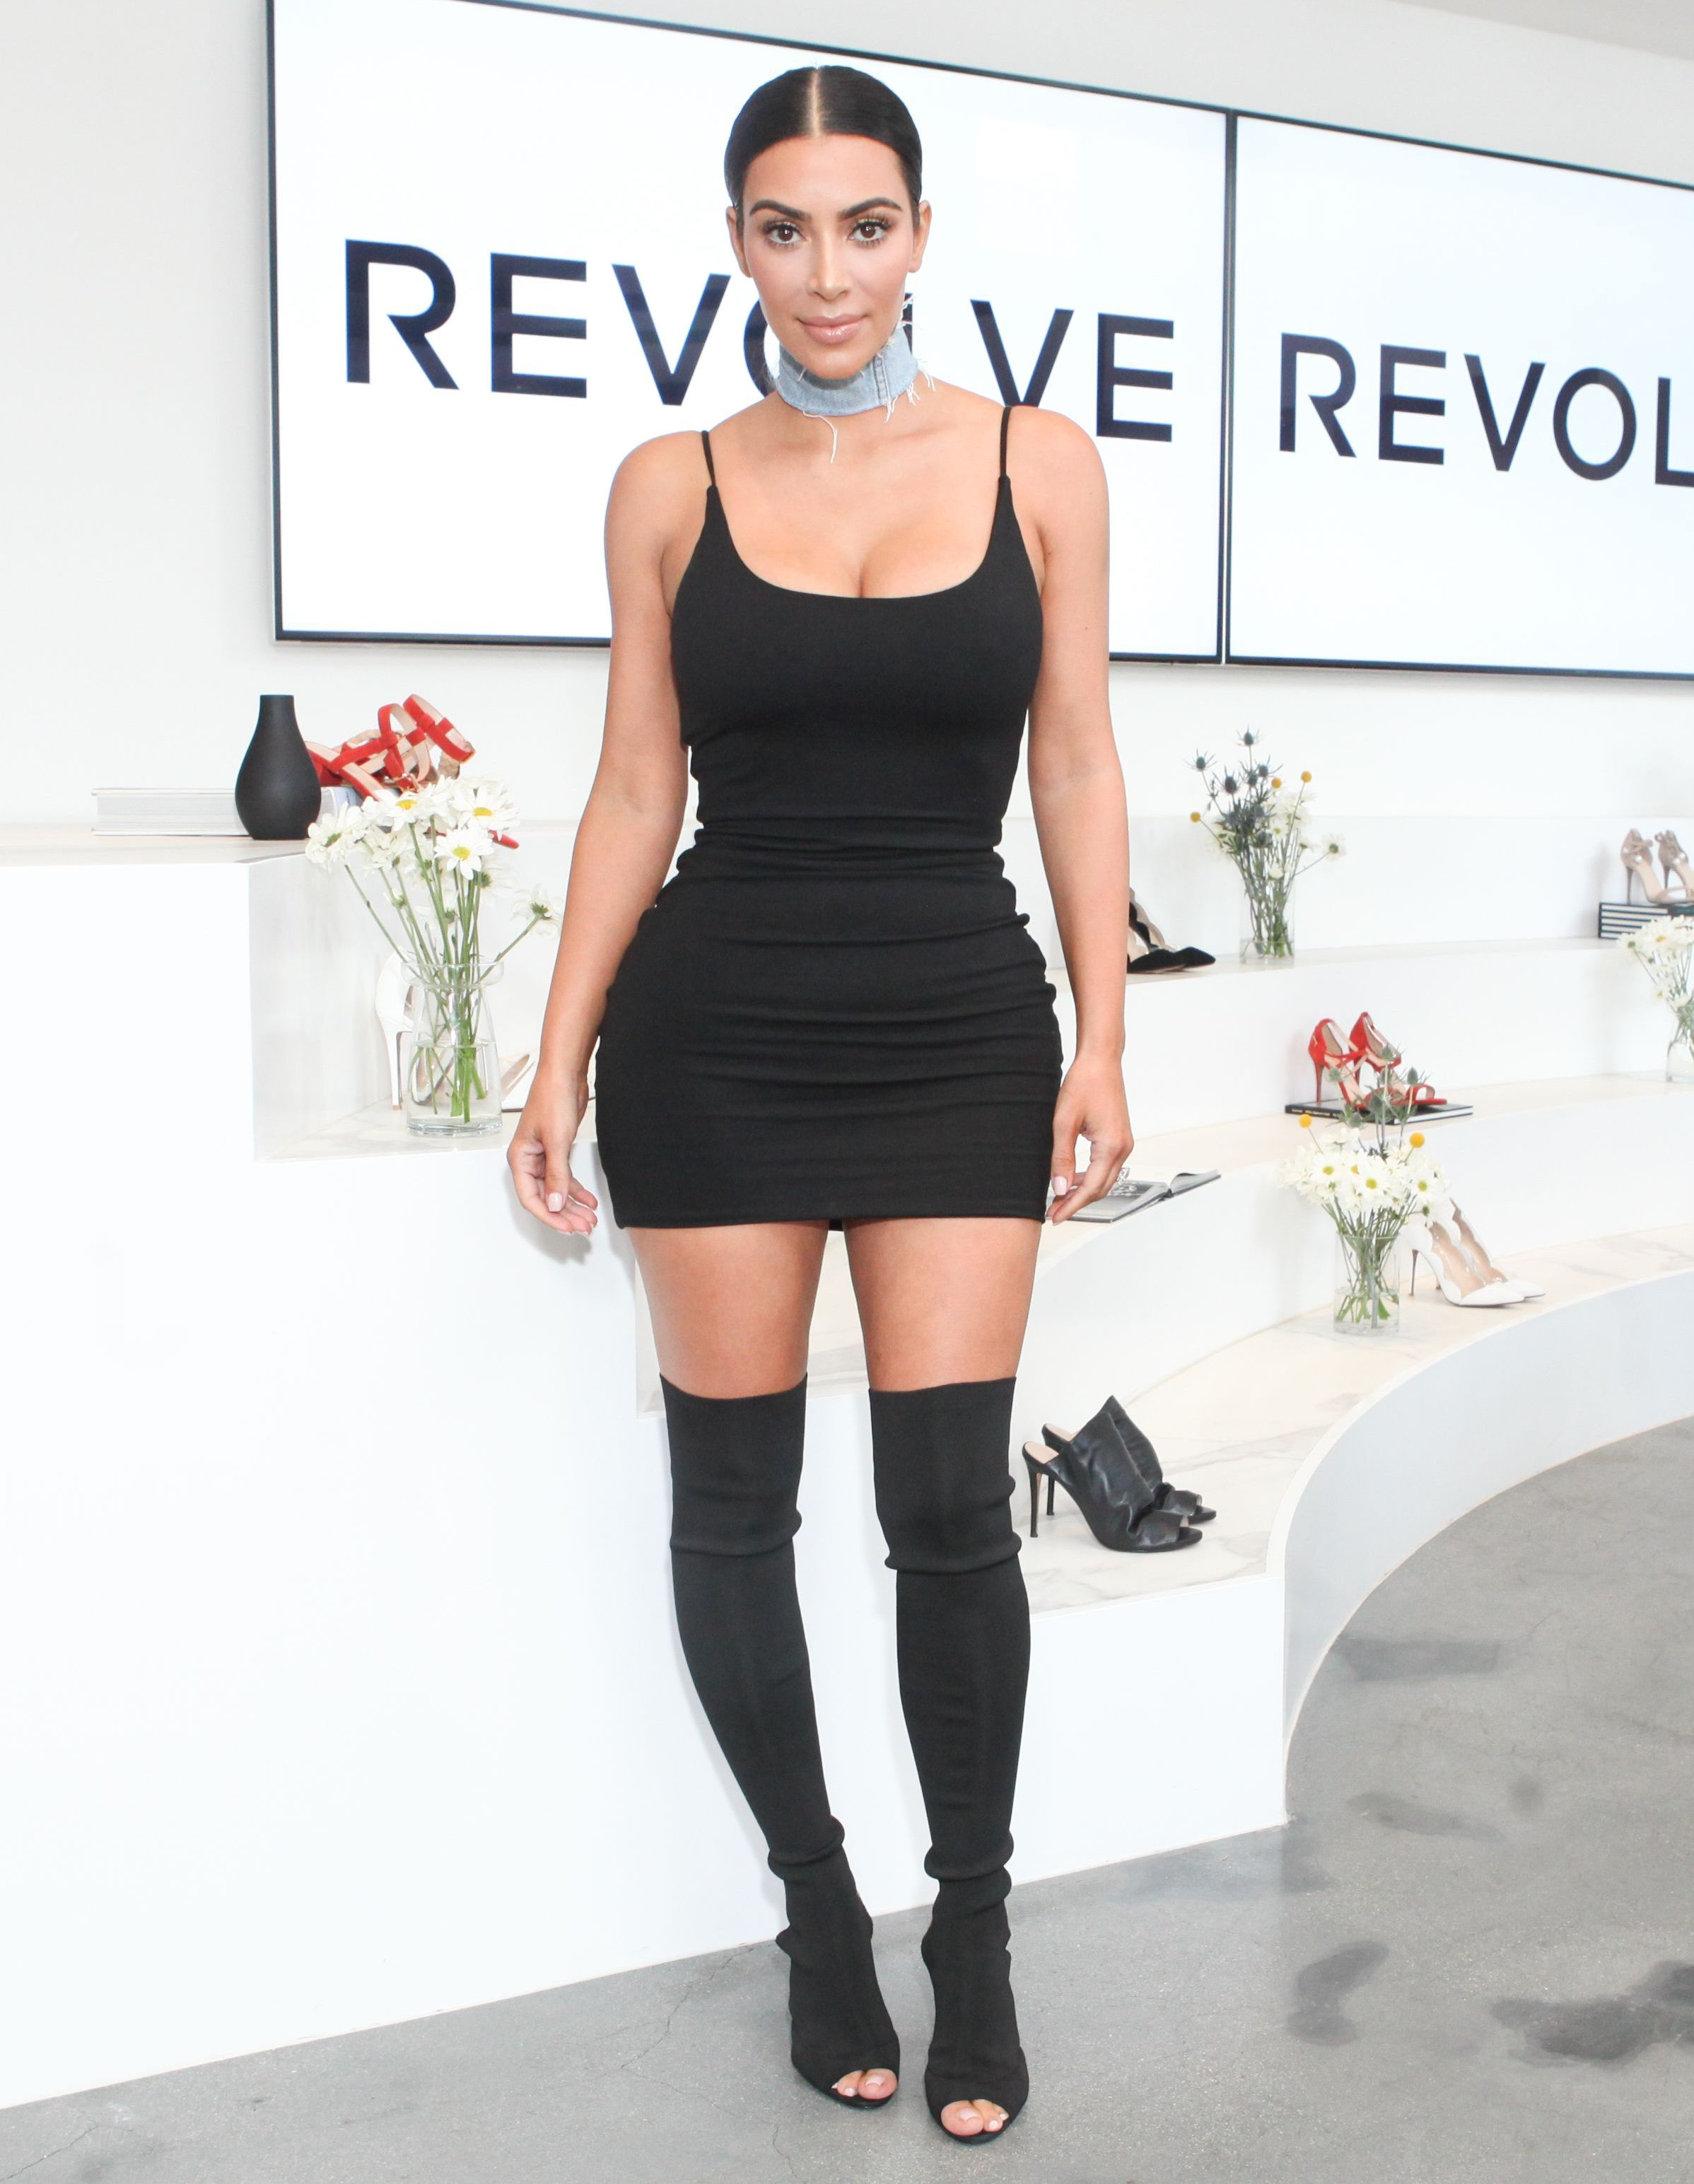 Kim Kardashian came out in a dress with a breasted 12/07/2017 100